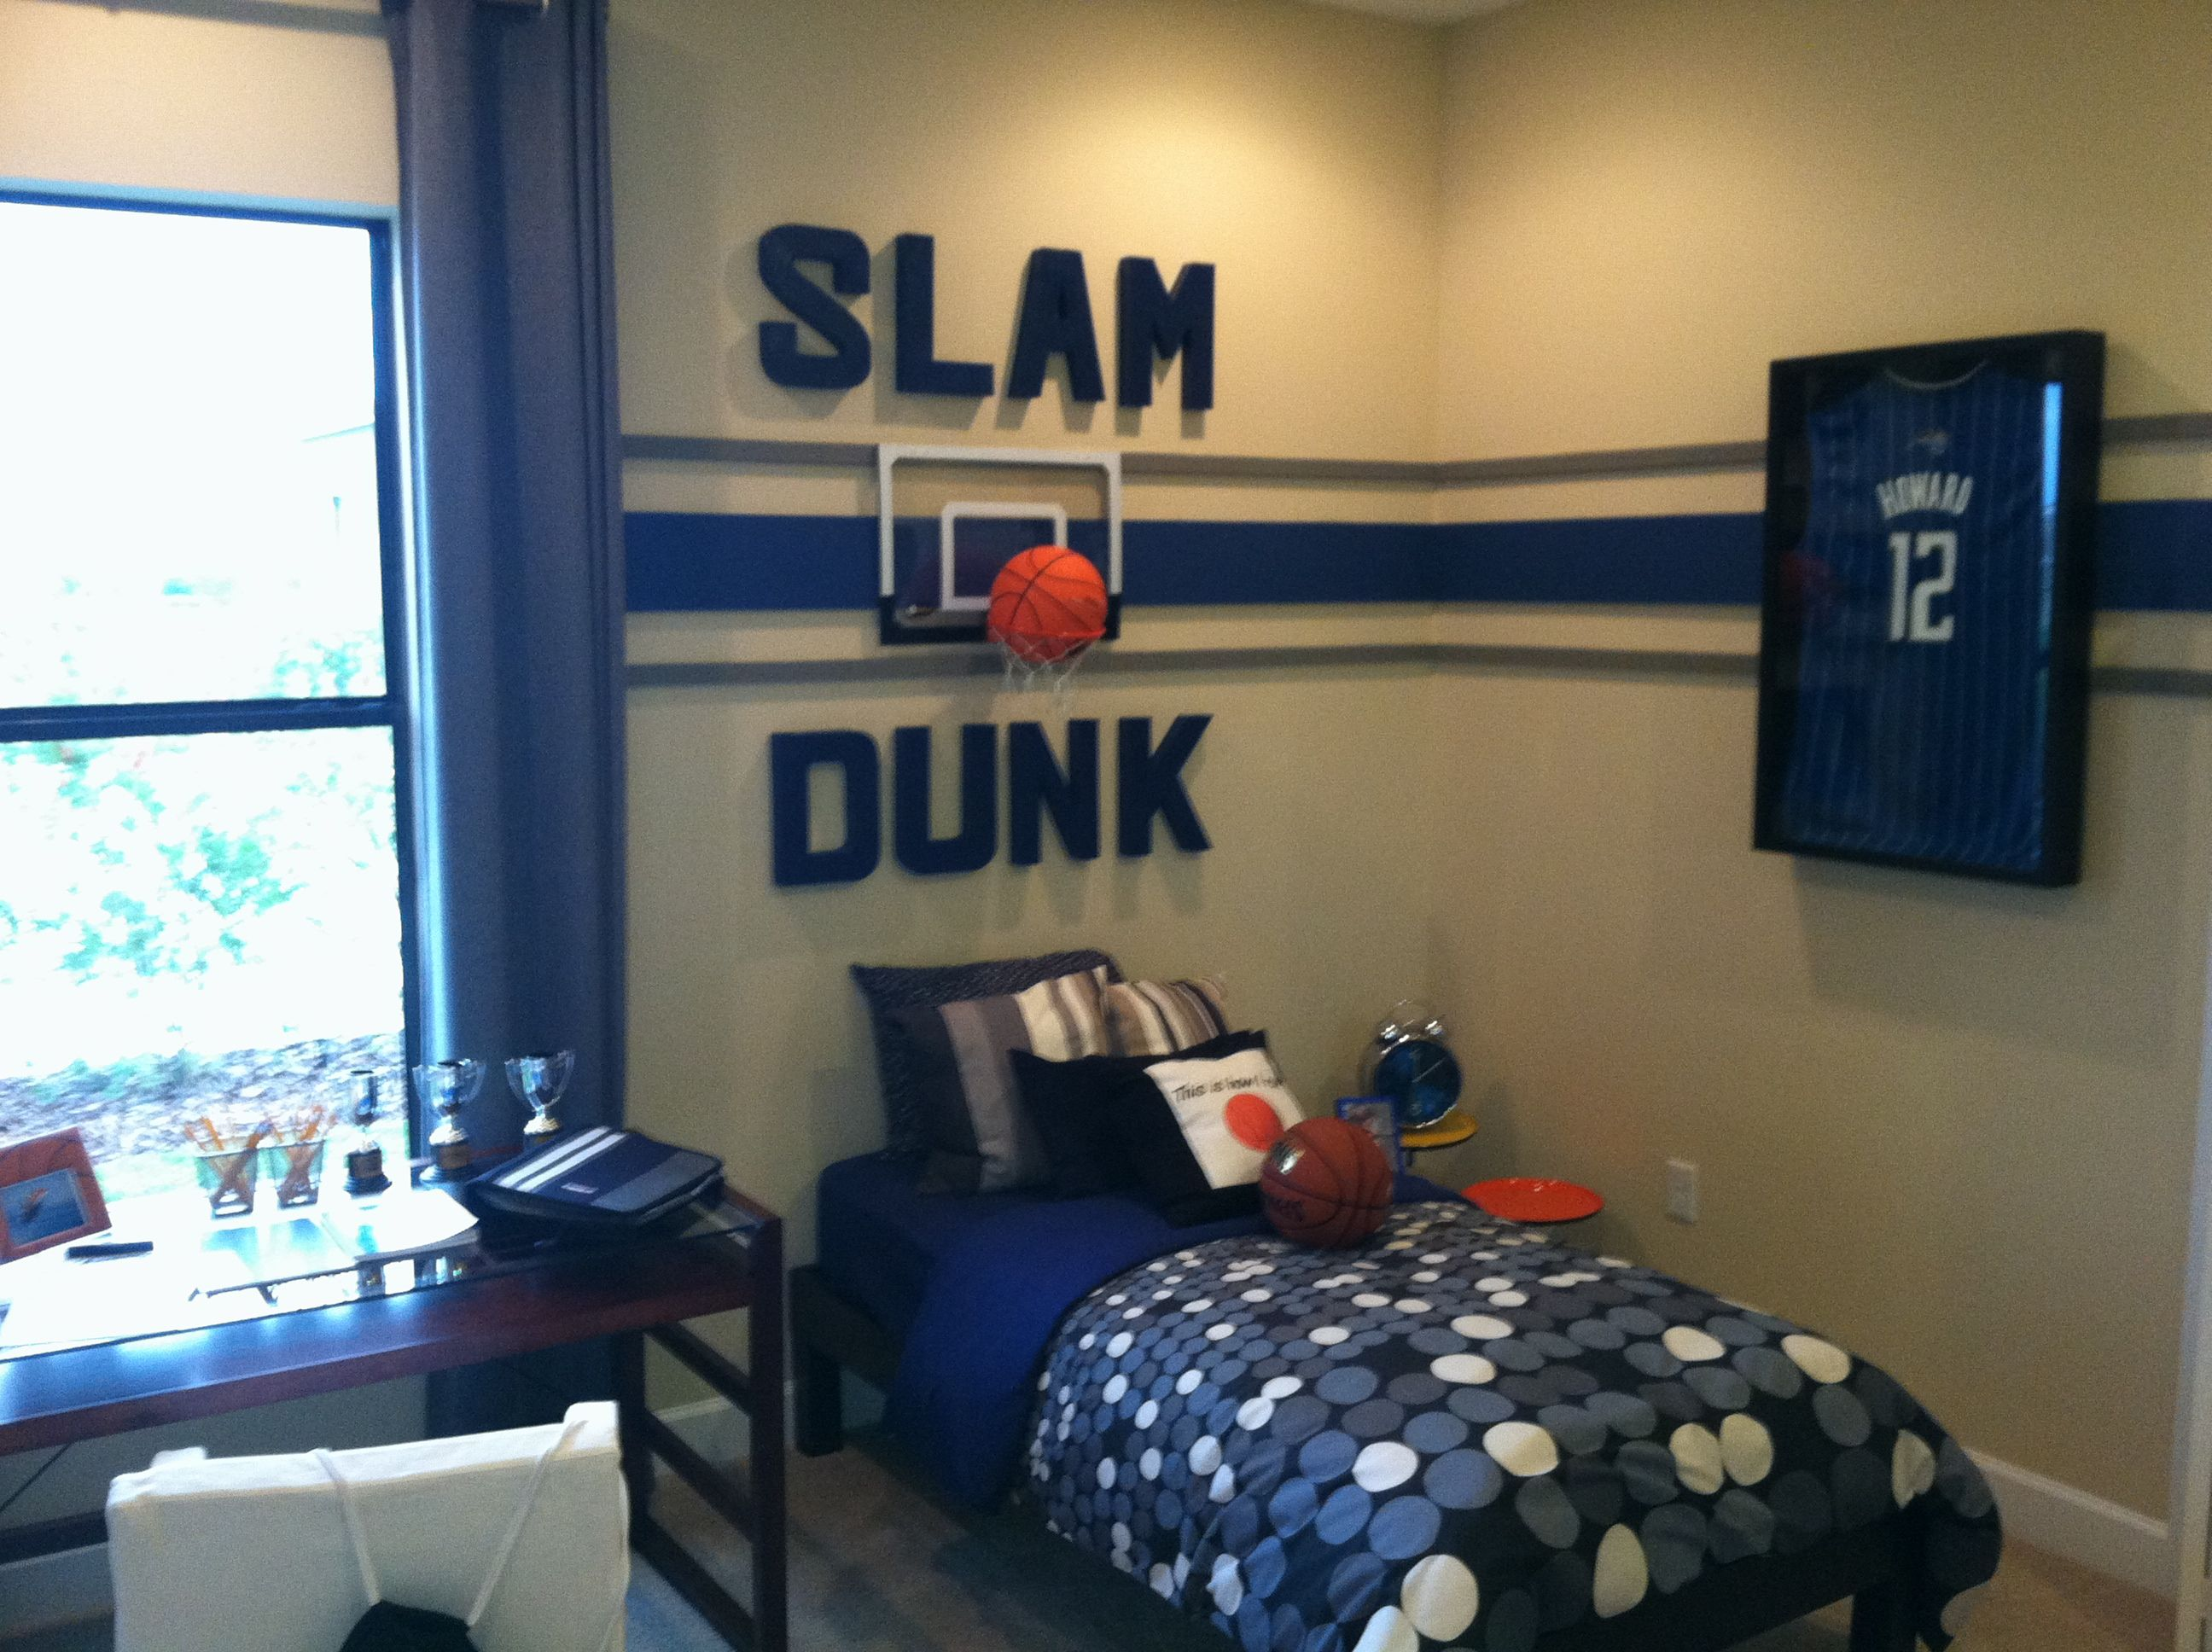 Bedroom, Agreeable Boys Bedroom Sports Themed Room Interior Designs Ideas:  Fabulous Boys Bedroom Ideas Pictures For Your Kids